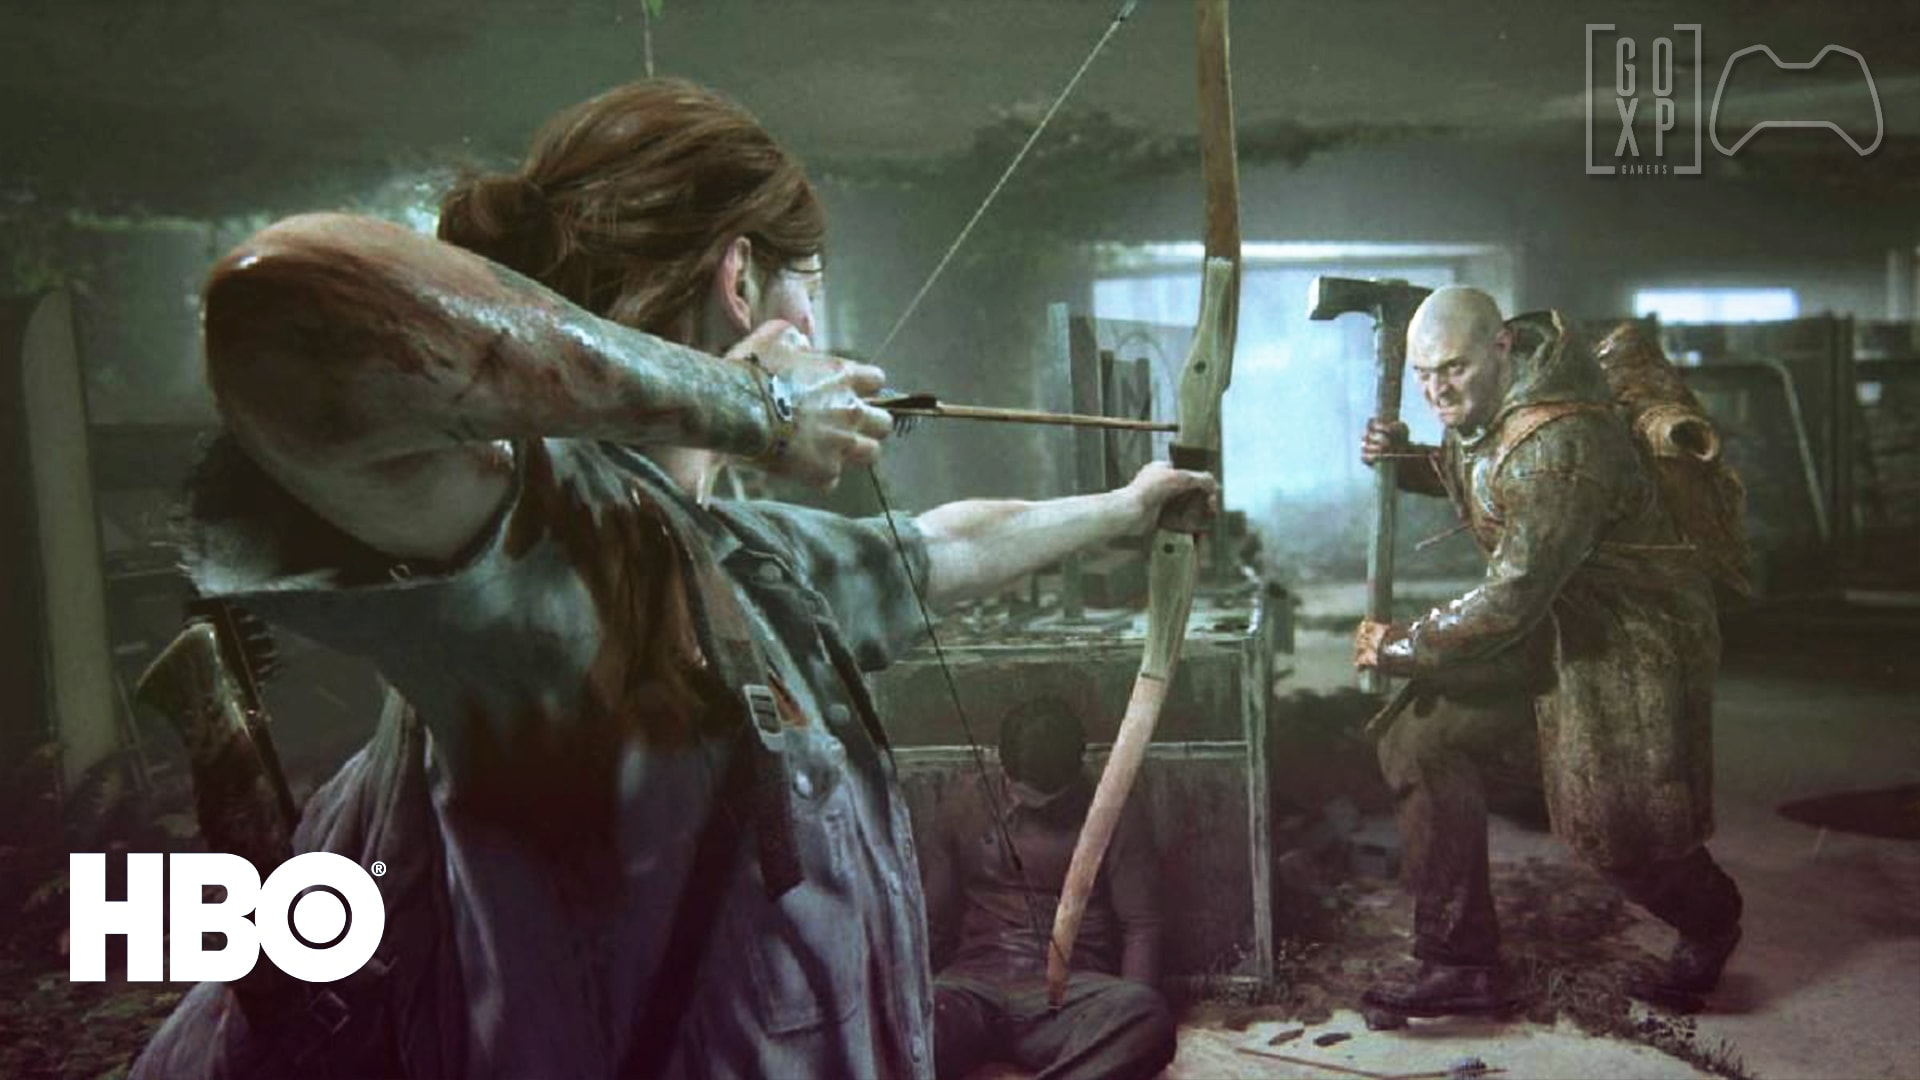 Se Anuncia Serie Para The Last Of Us Dirigido Por HBO